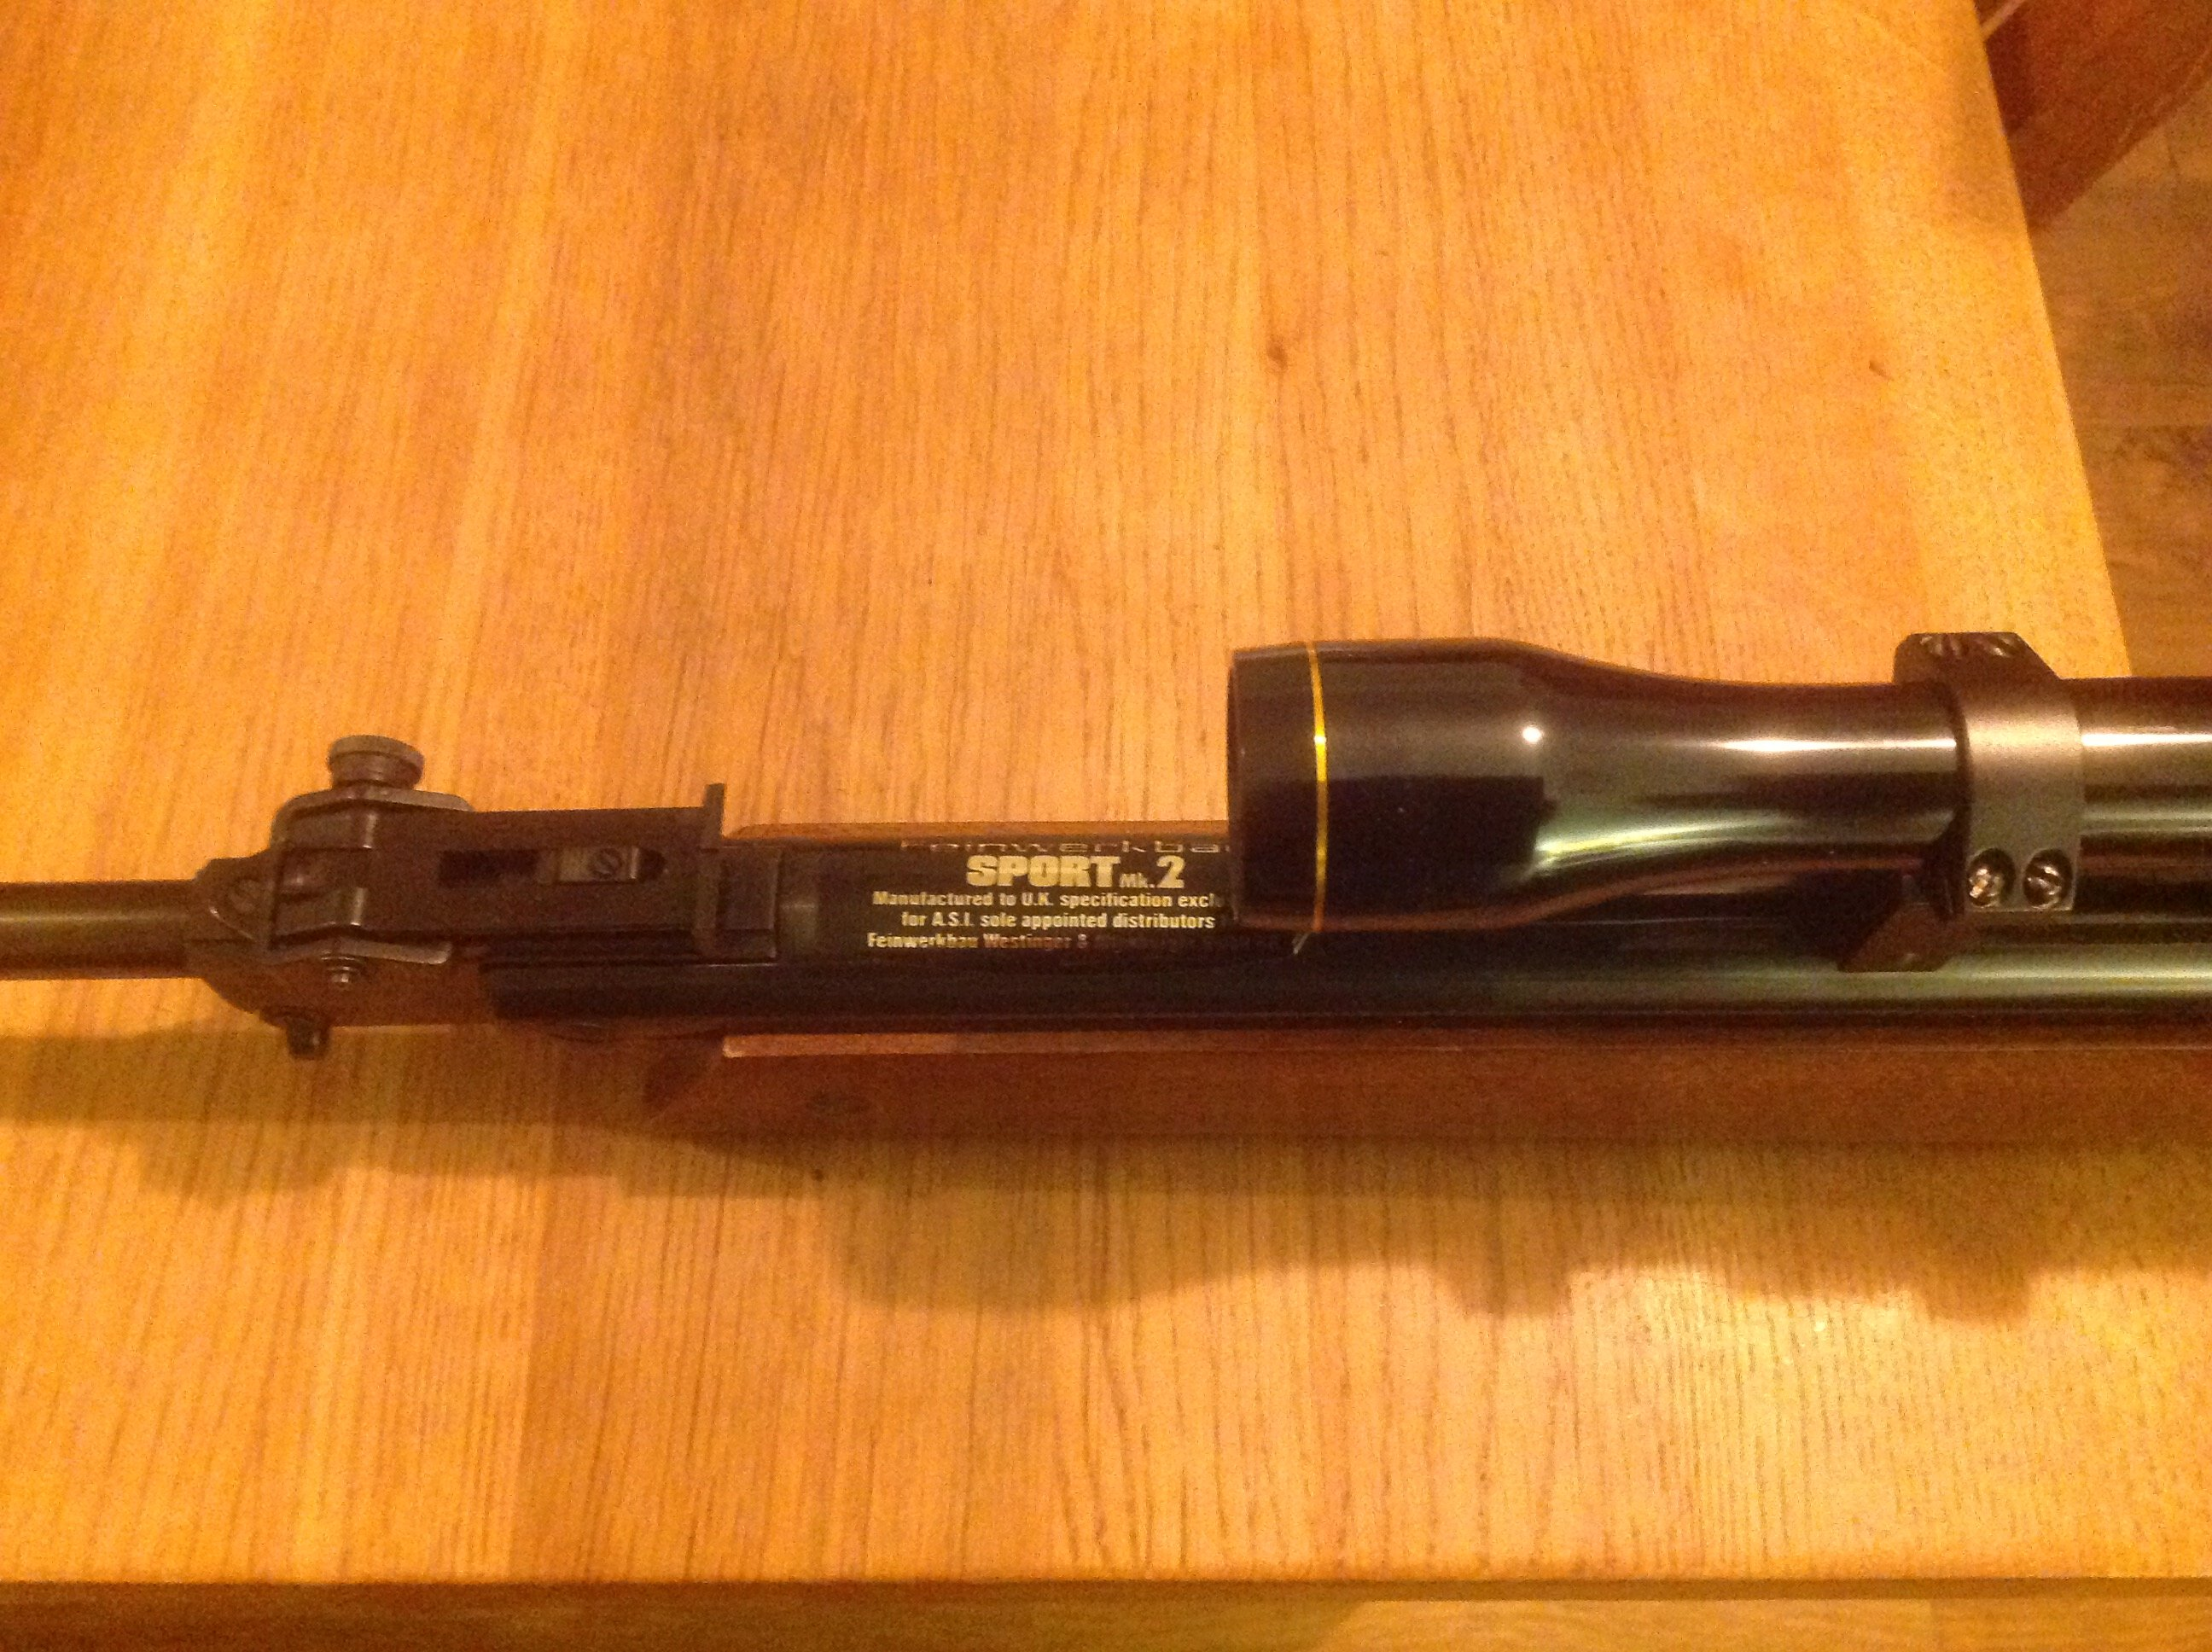 classic air rifle /new toy - General Discussion - UKV - The